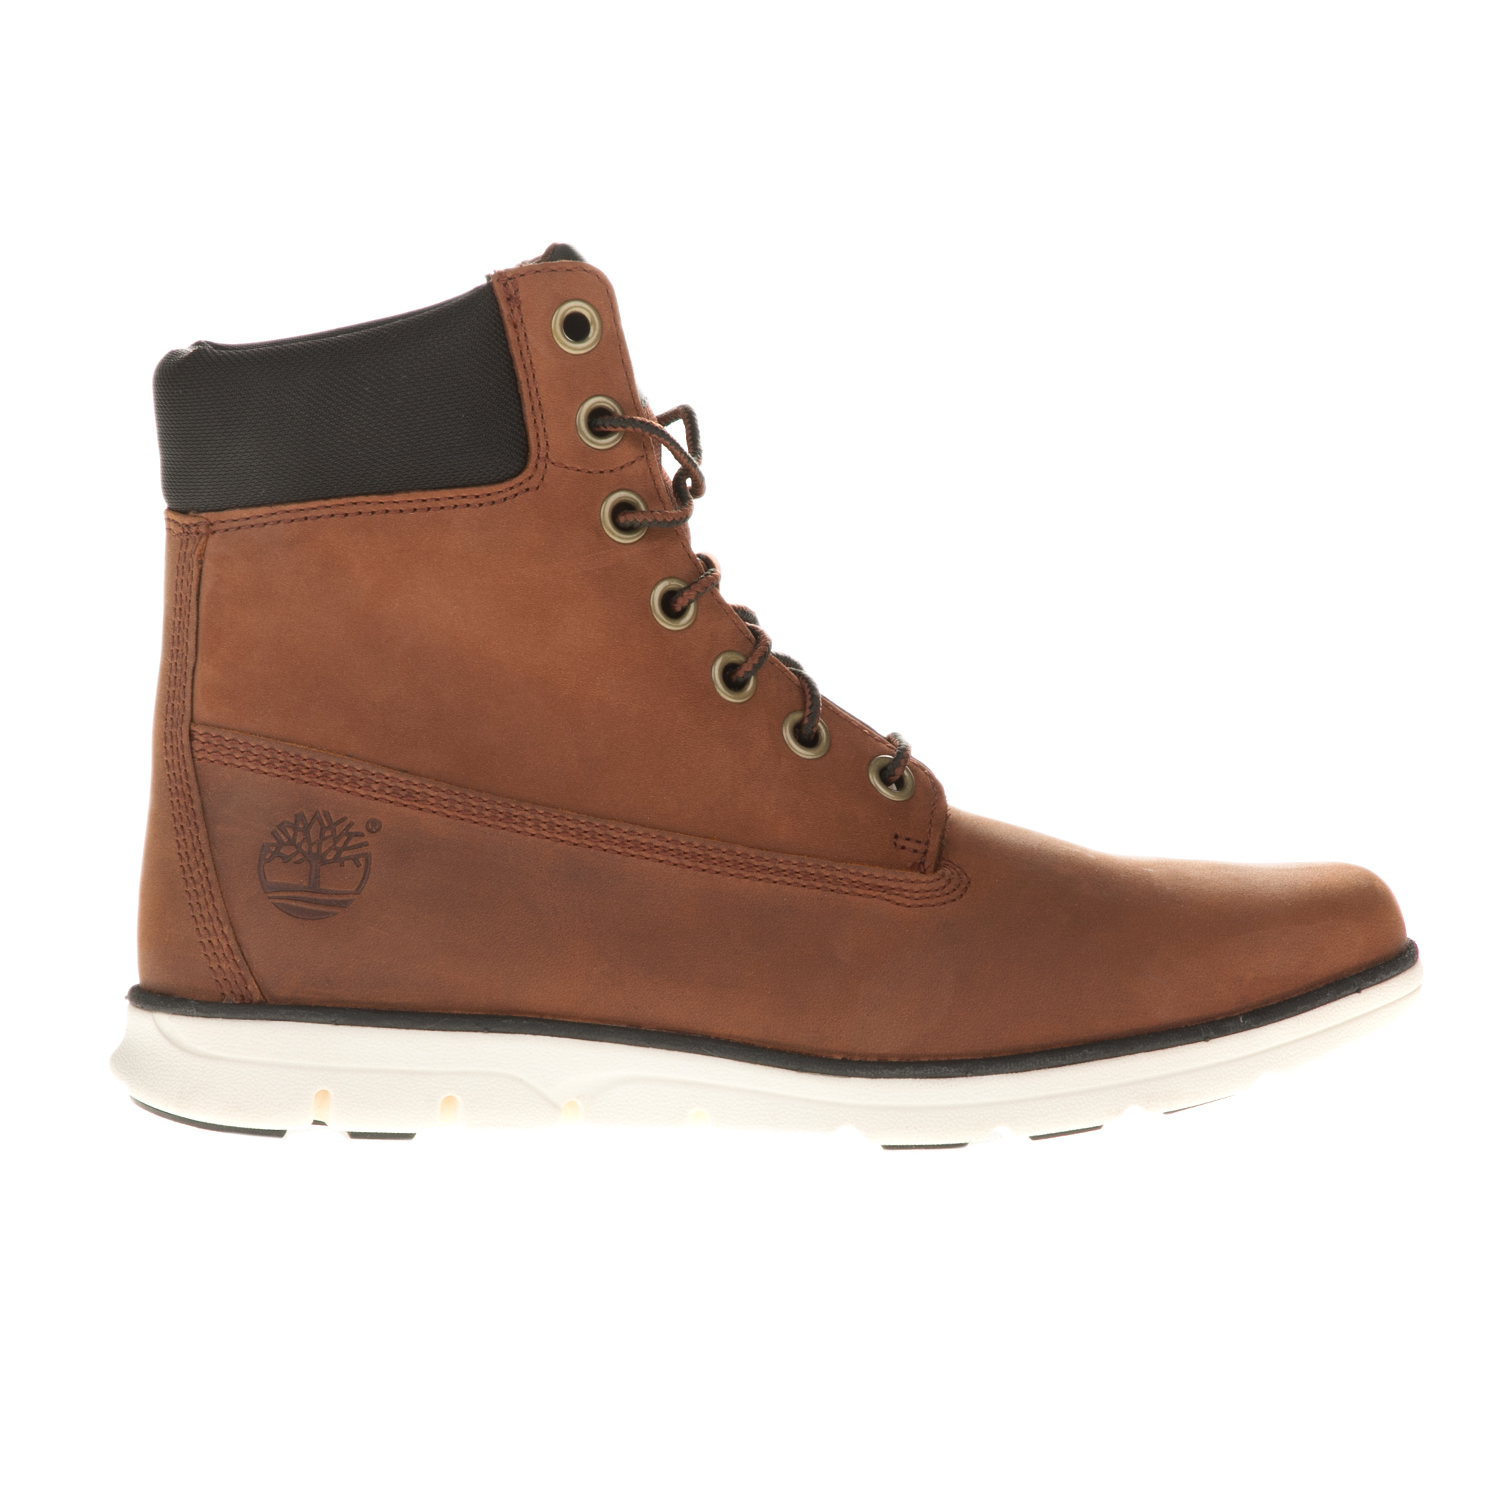 TIMBERLAND – Ανδρικά μποτάκια TIMBERLAND 6 IN BRADSTREET καφέ